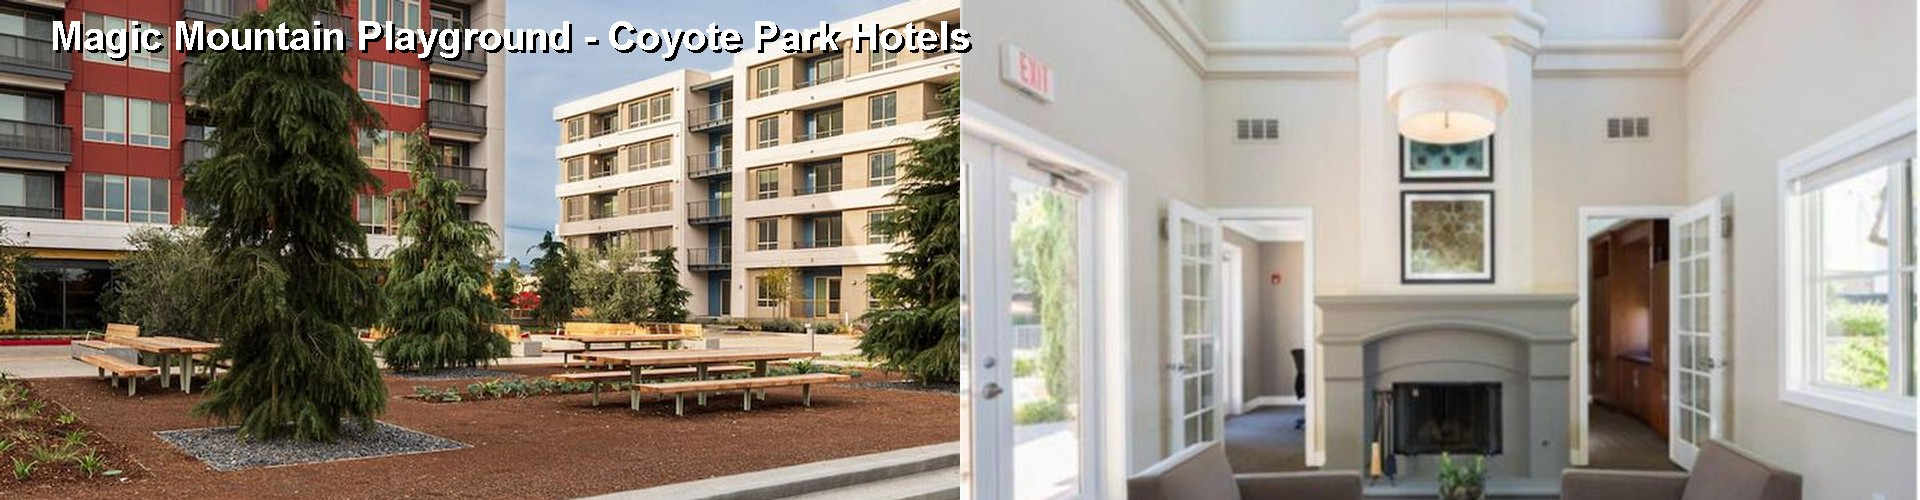 5 Best Hotels Near Magic Mountain Playground Coyote Park